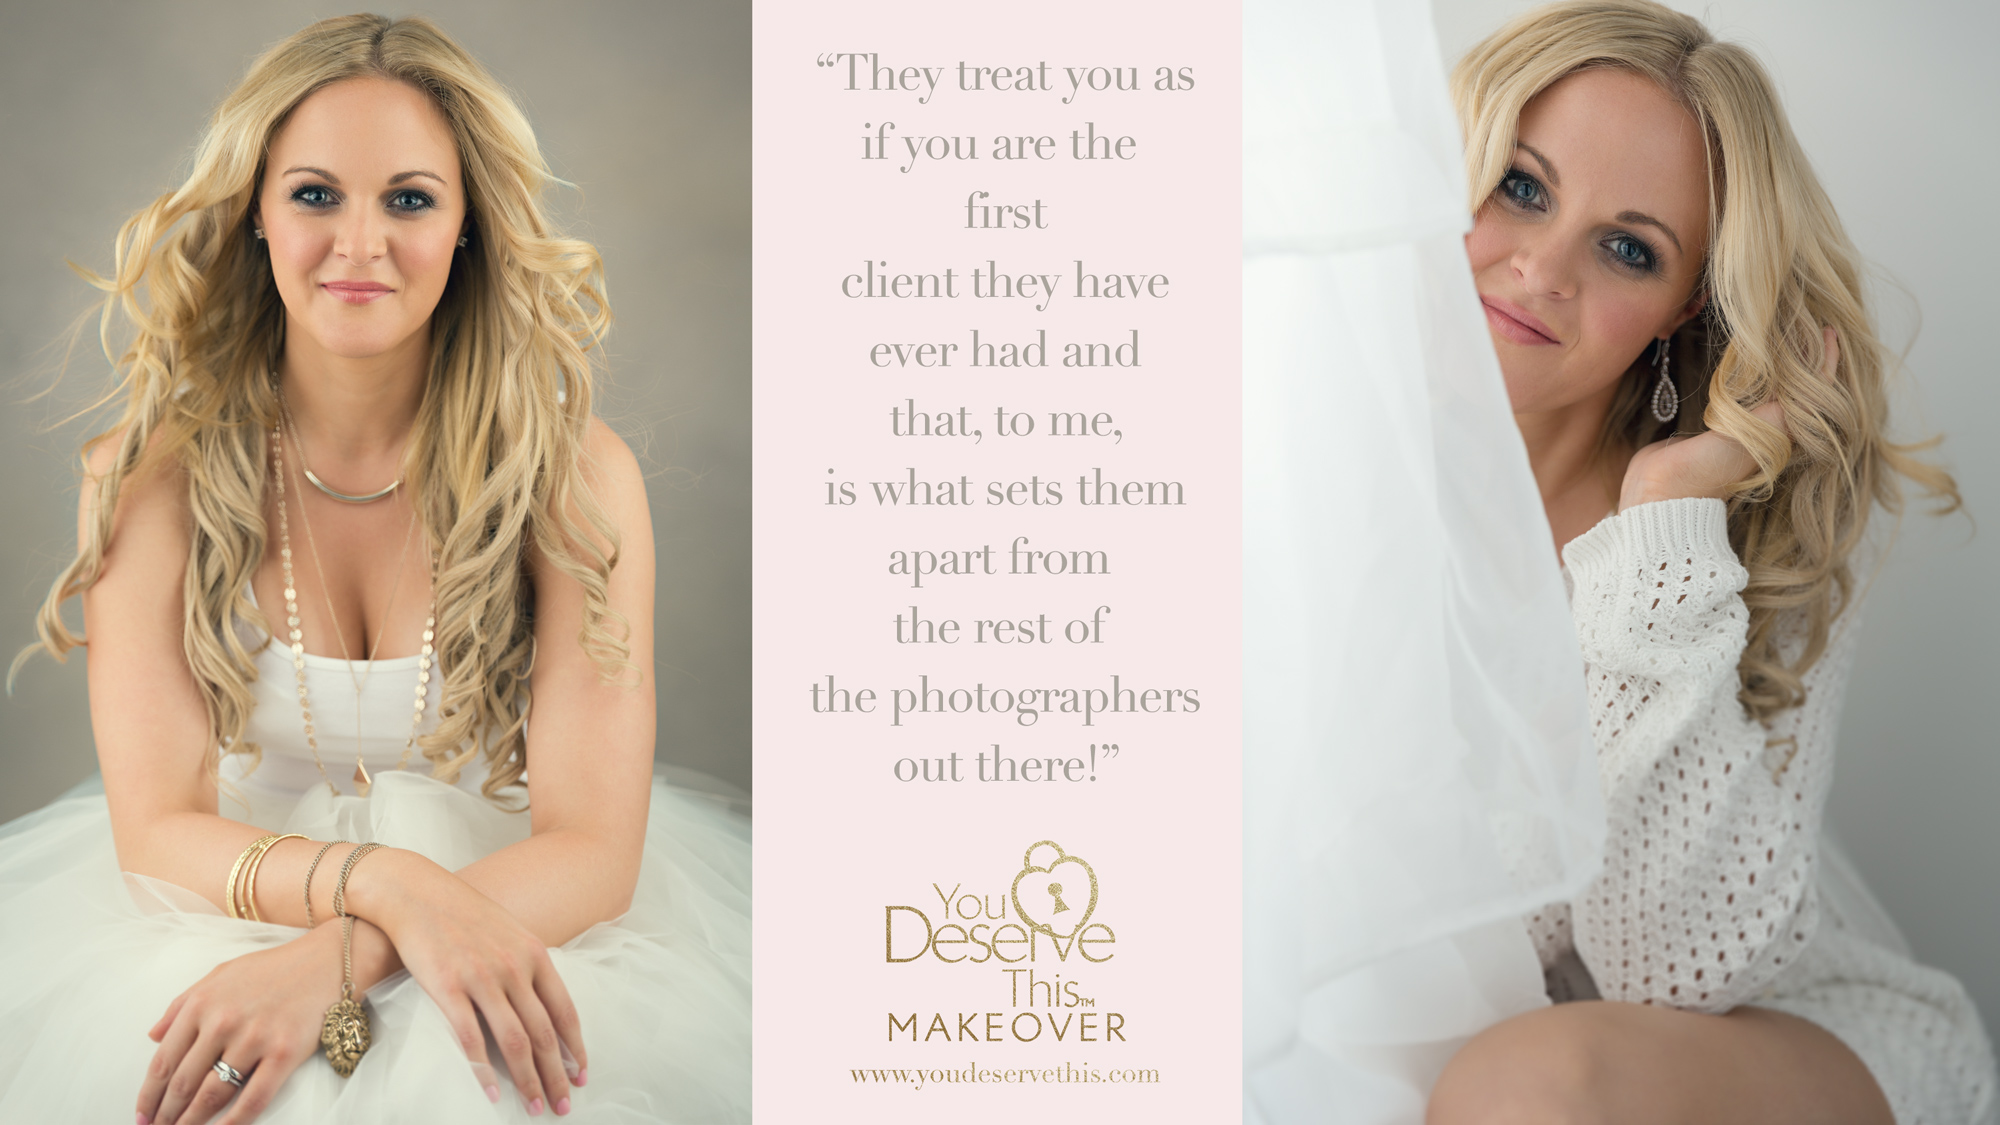 They treat you as if you are the first client they have ever had and that, to me, is what sets them apart from the rest of the photographers out there! Makeover and Photoshoot  www.youdeservethis.com